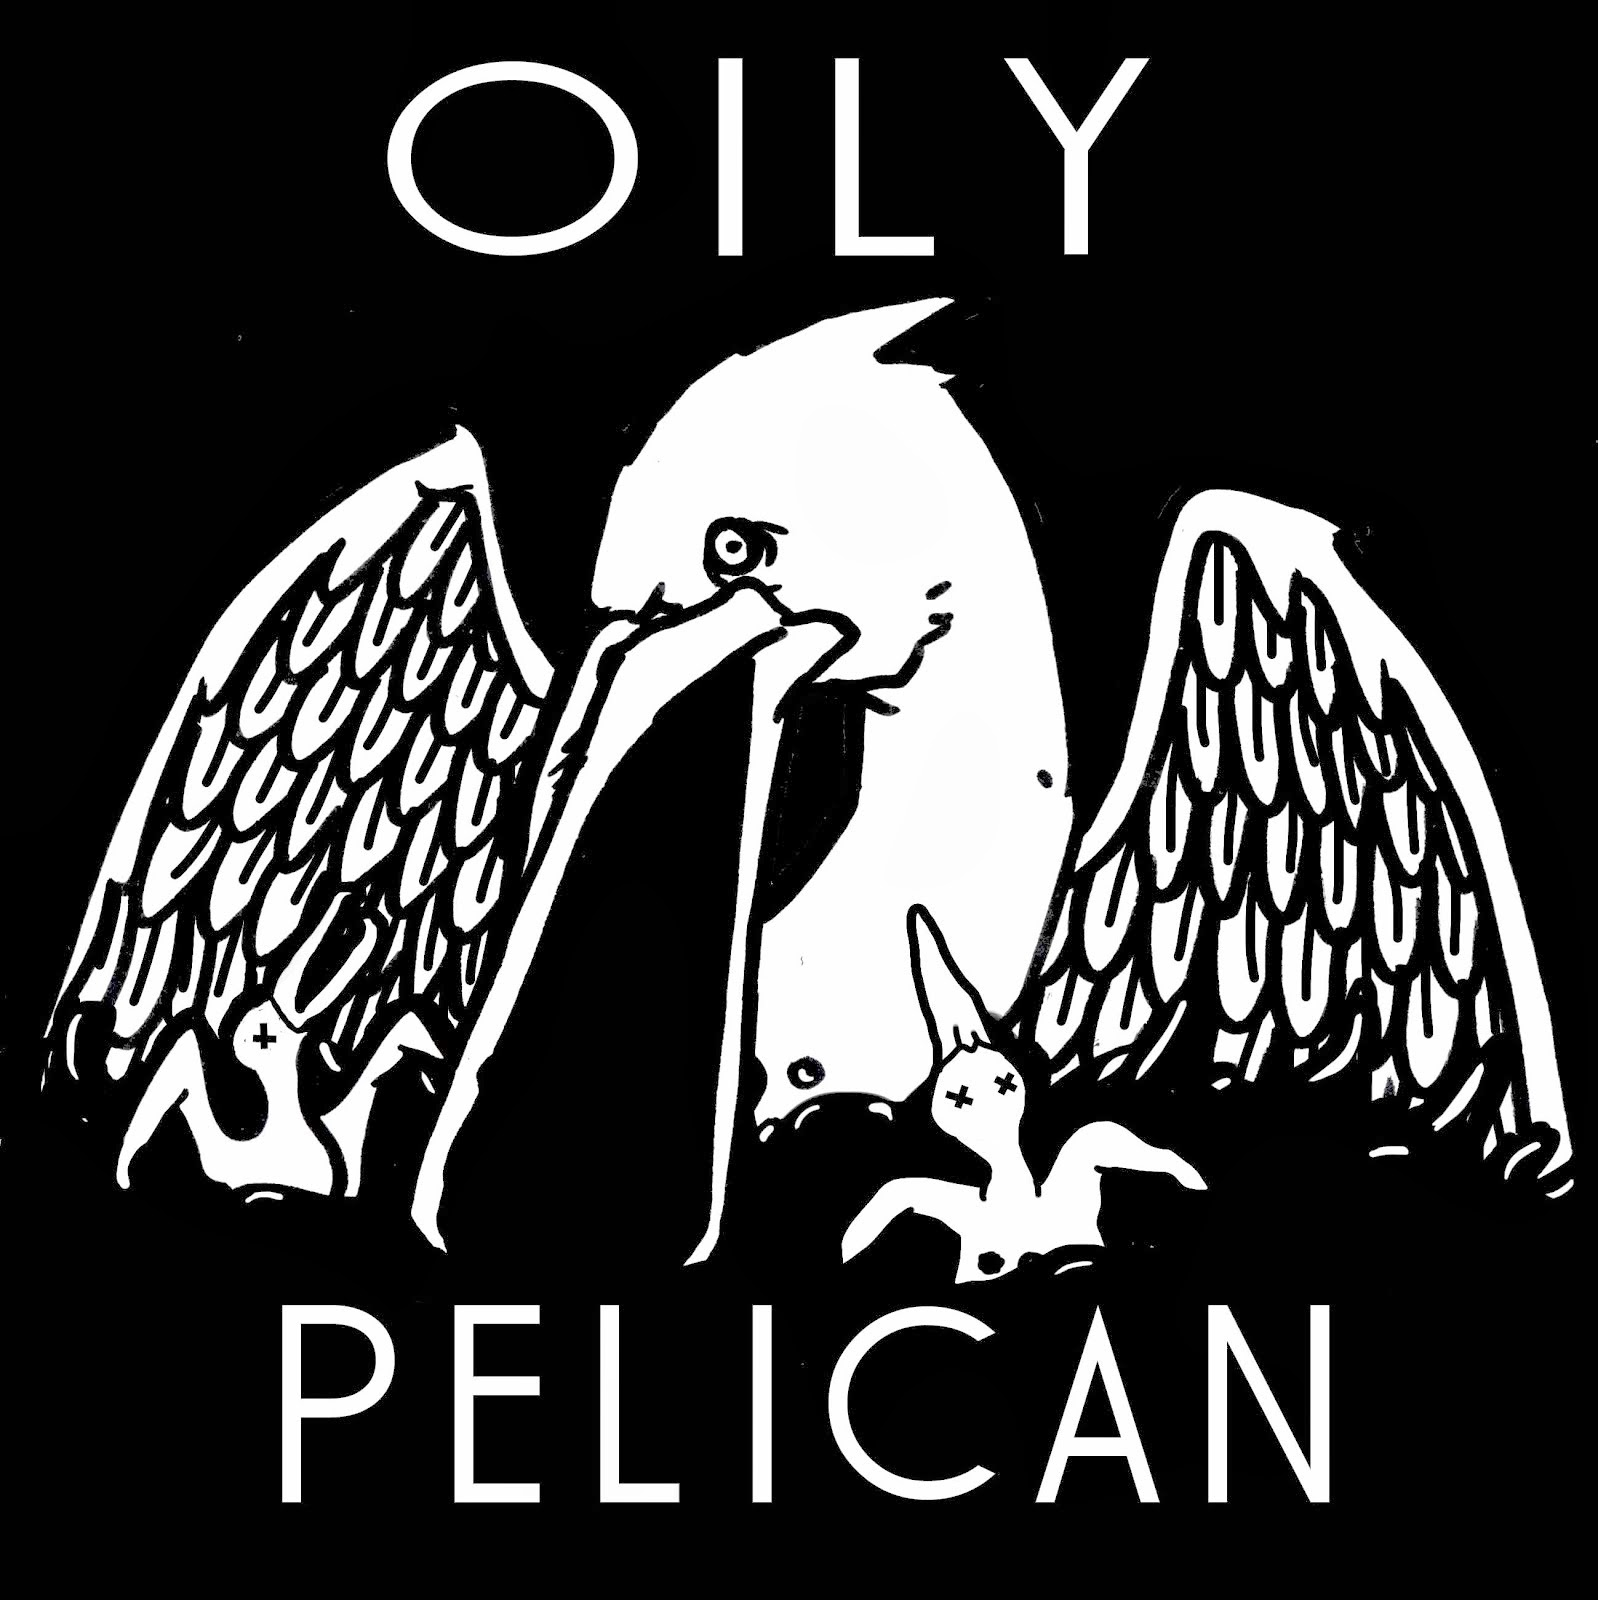 Oily Pelican Press